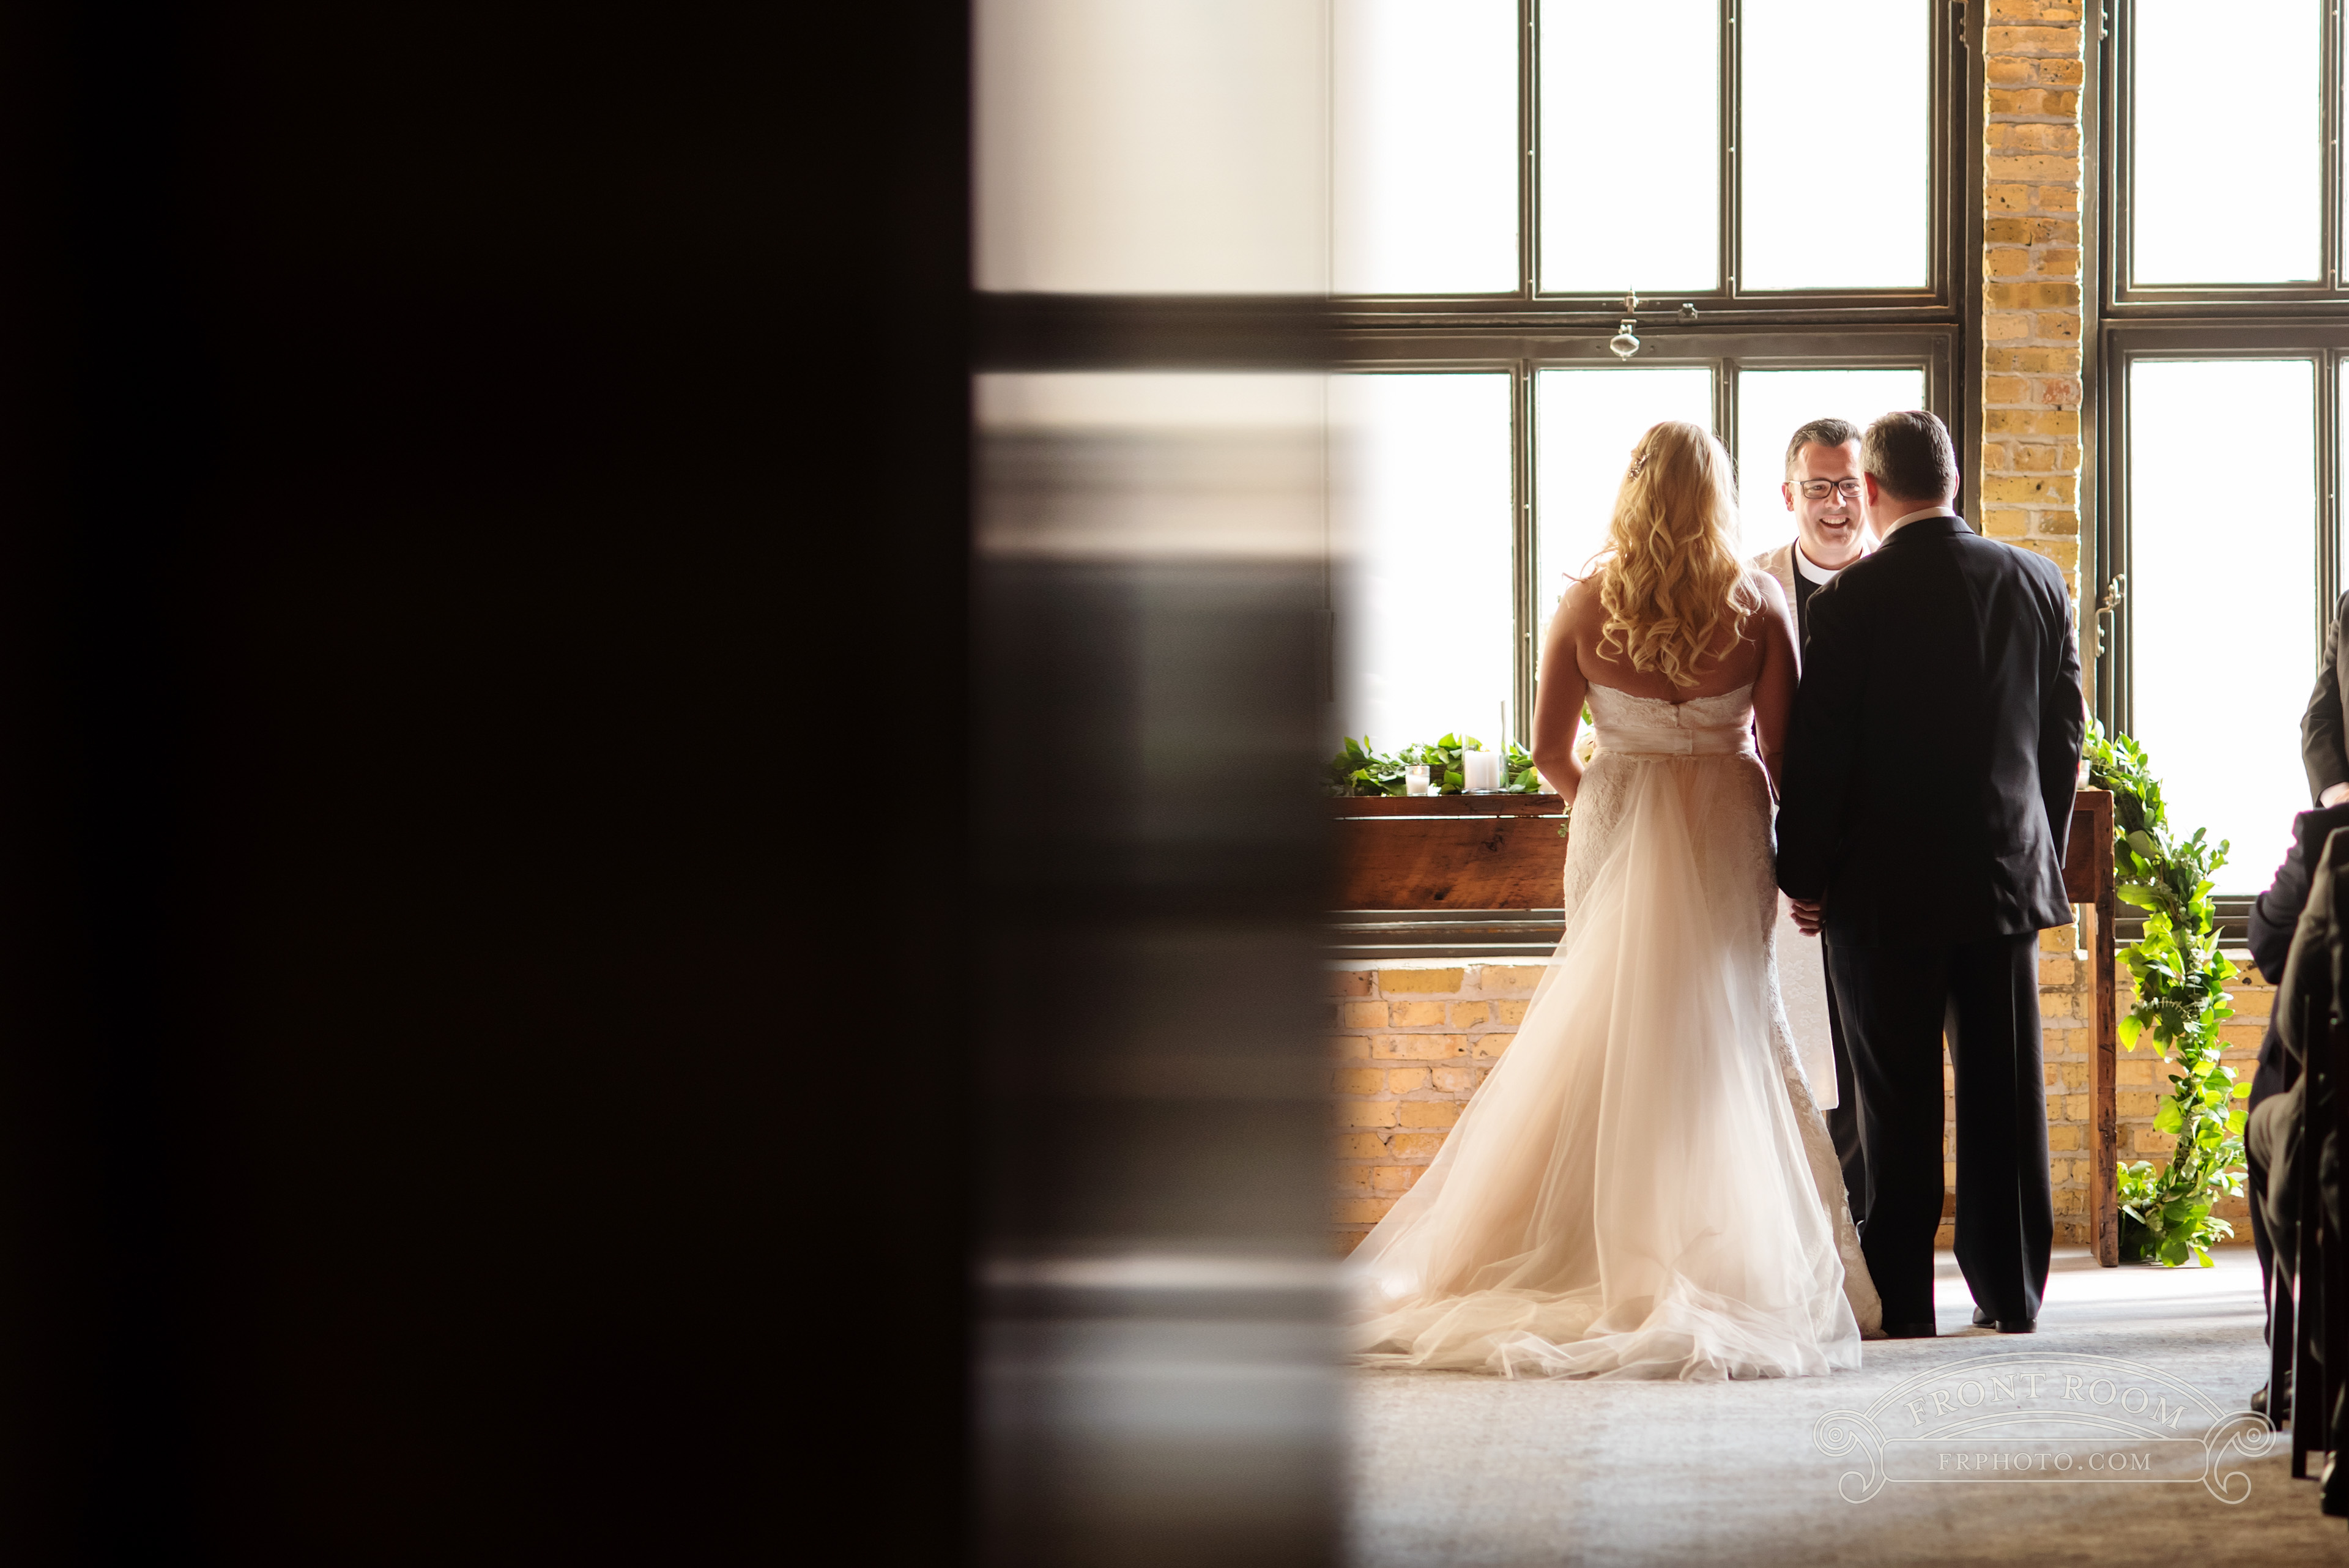 Pritzlaff_Wedding_FRPhoto_160521A_W_480_blog